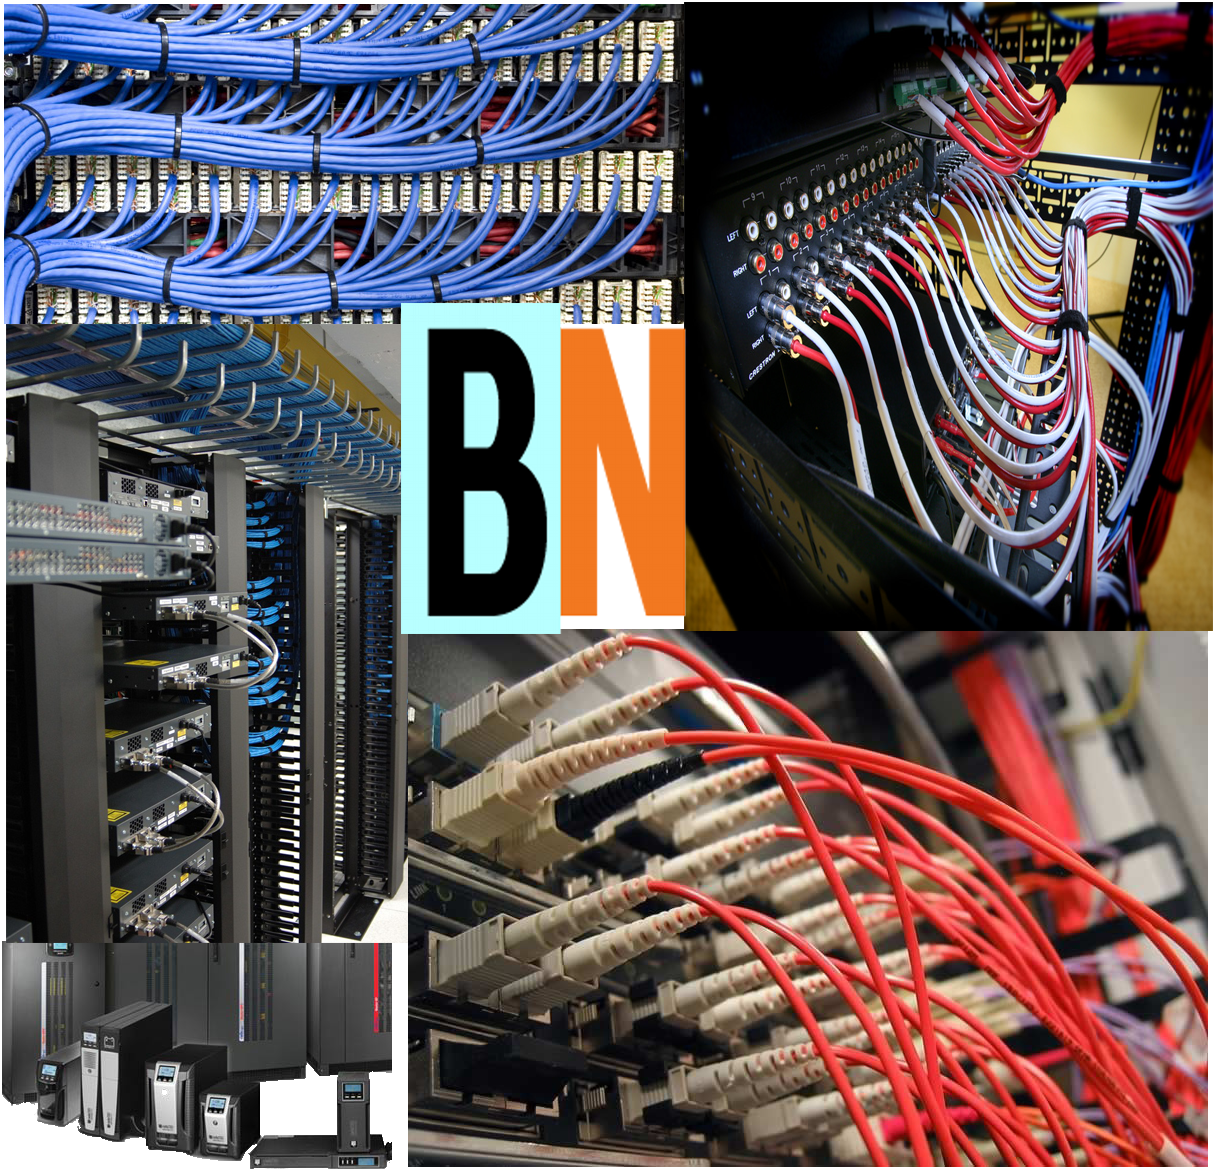 Infrastructure cabling fiber, CAT5 CAT6 Rack and stack